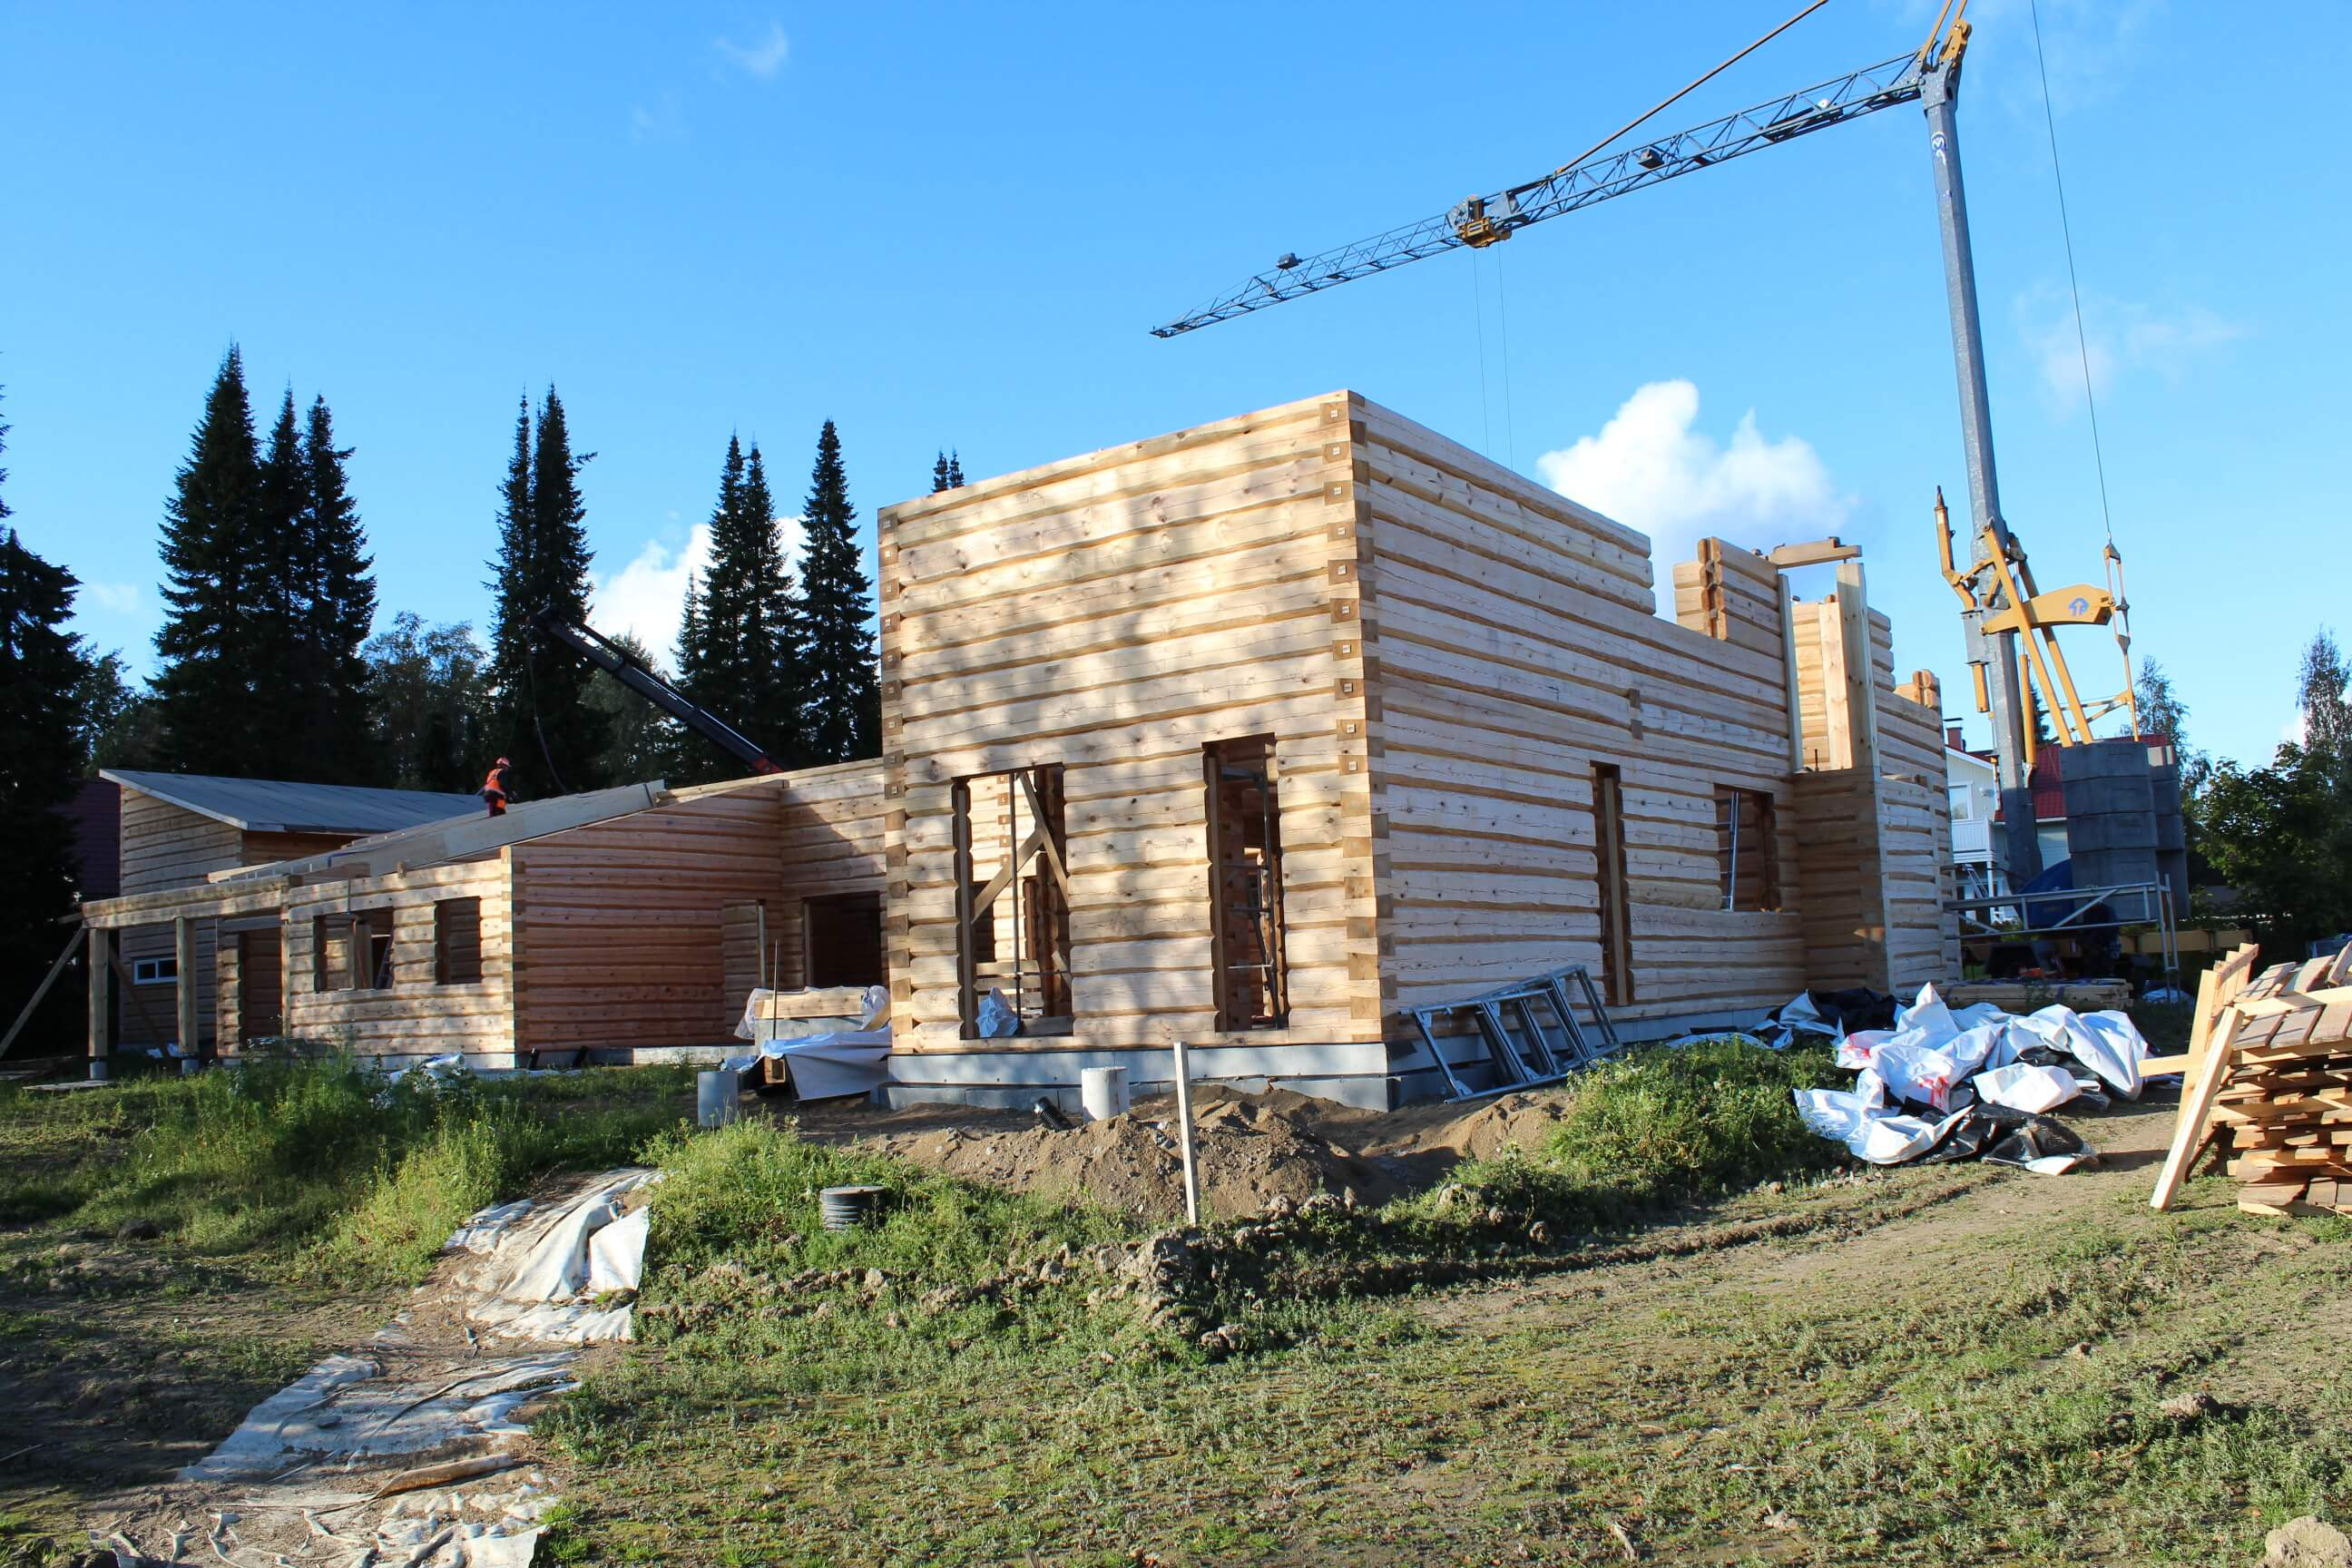 installation of the log home at the construction site